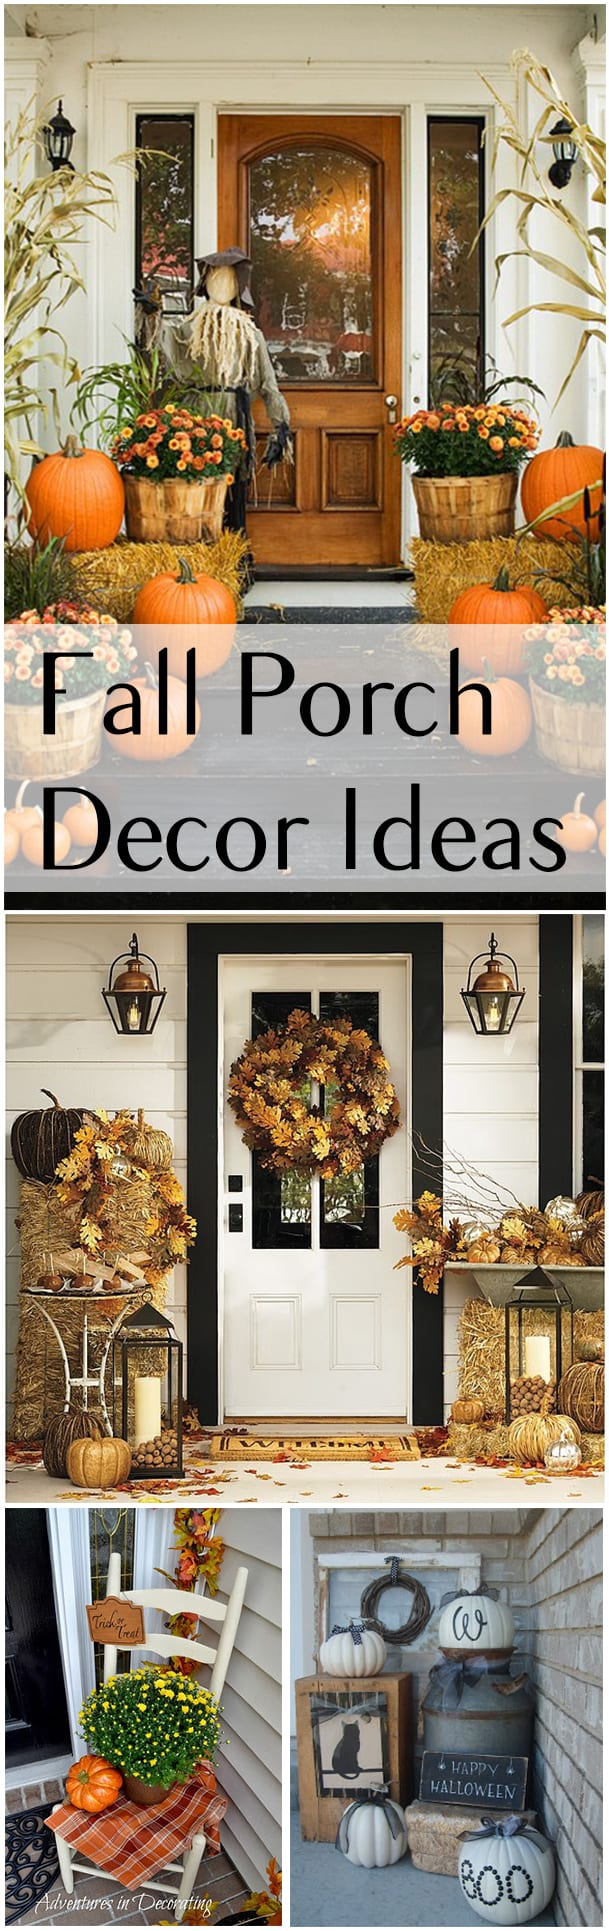 Fall Porch Decorations And Ideas Page 7 Of 12 How To